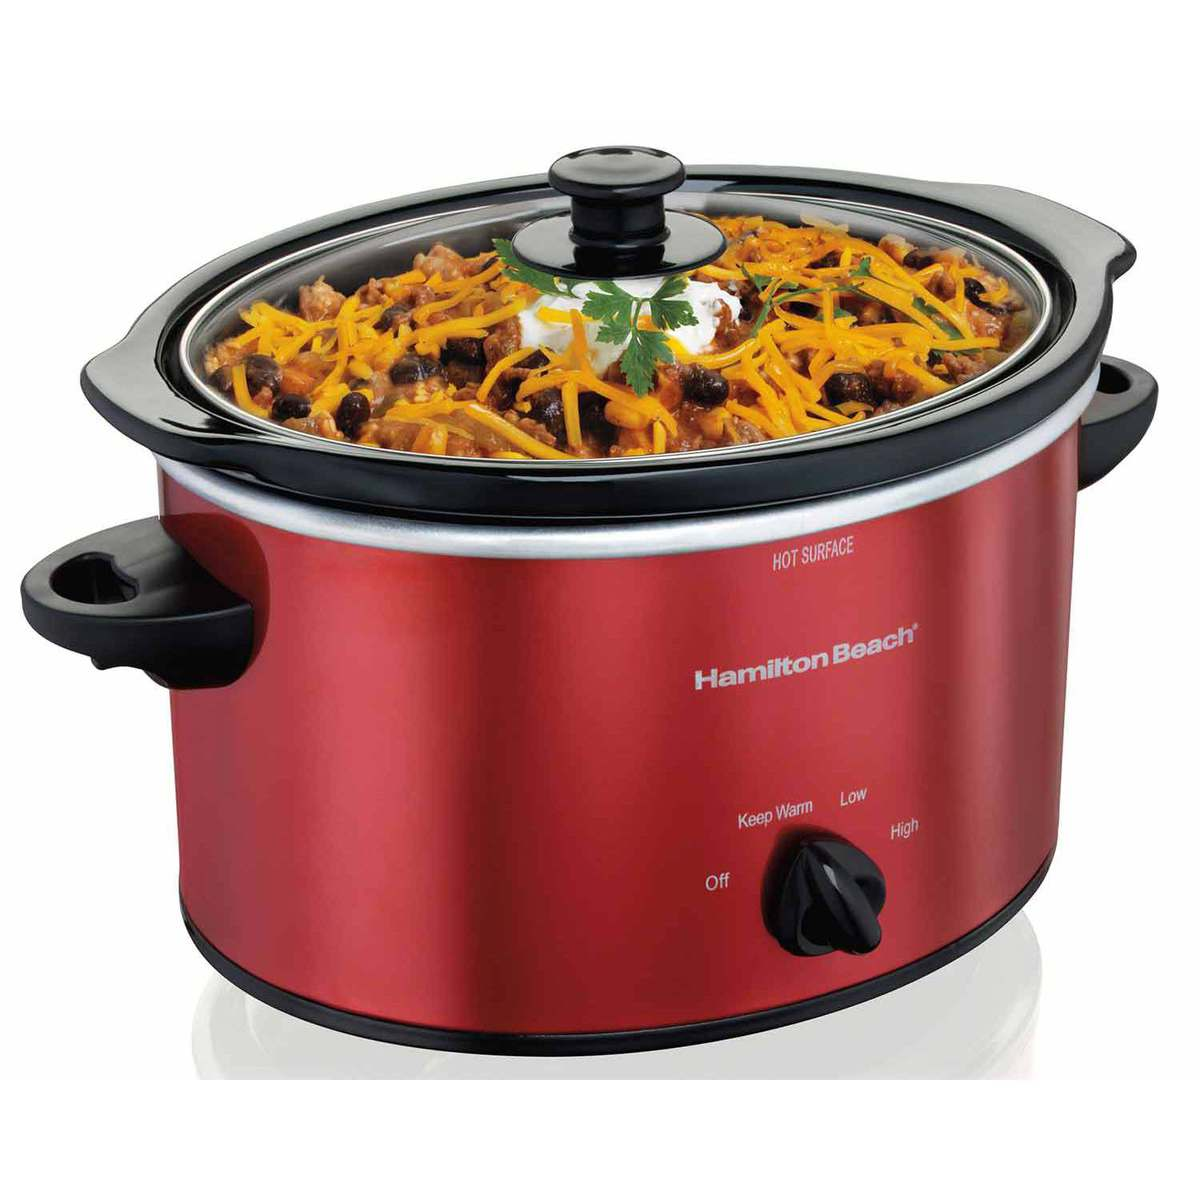 3 Quart Slow Cooker (33230)